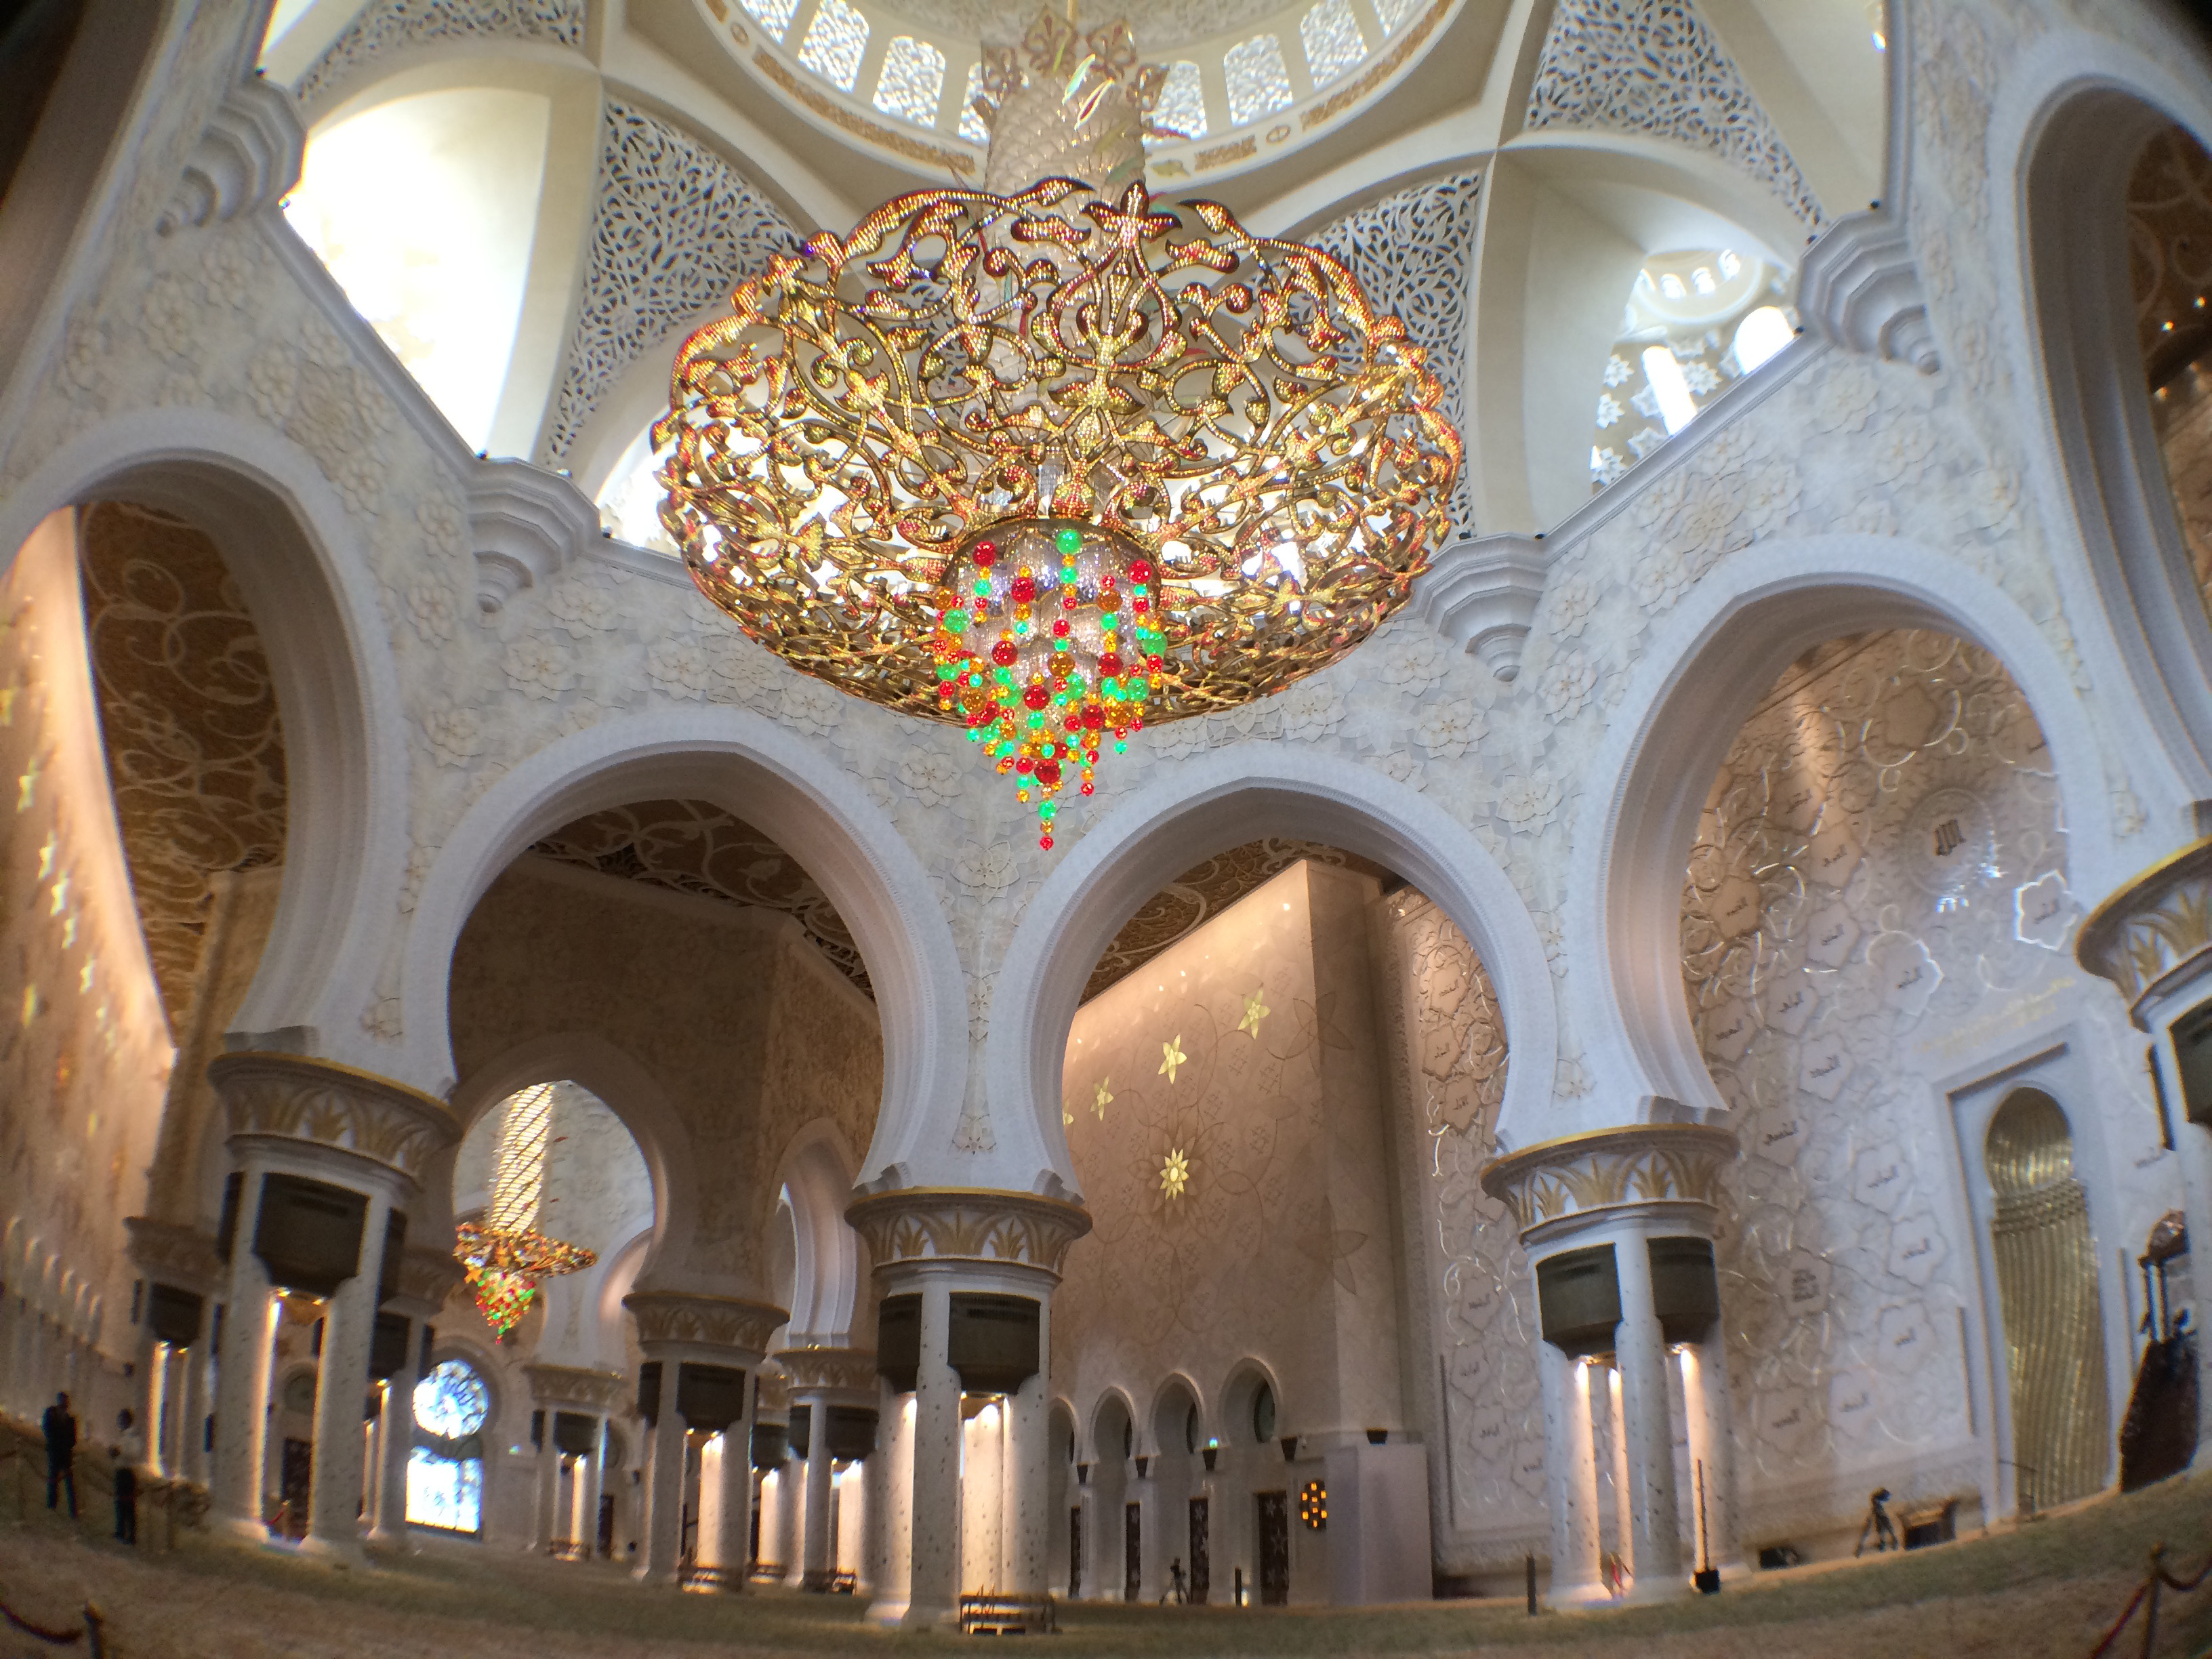 The details inside the Sheikh Zayed Grand Mosque